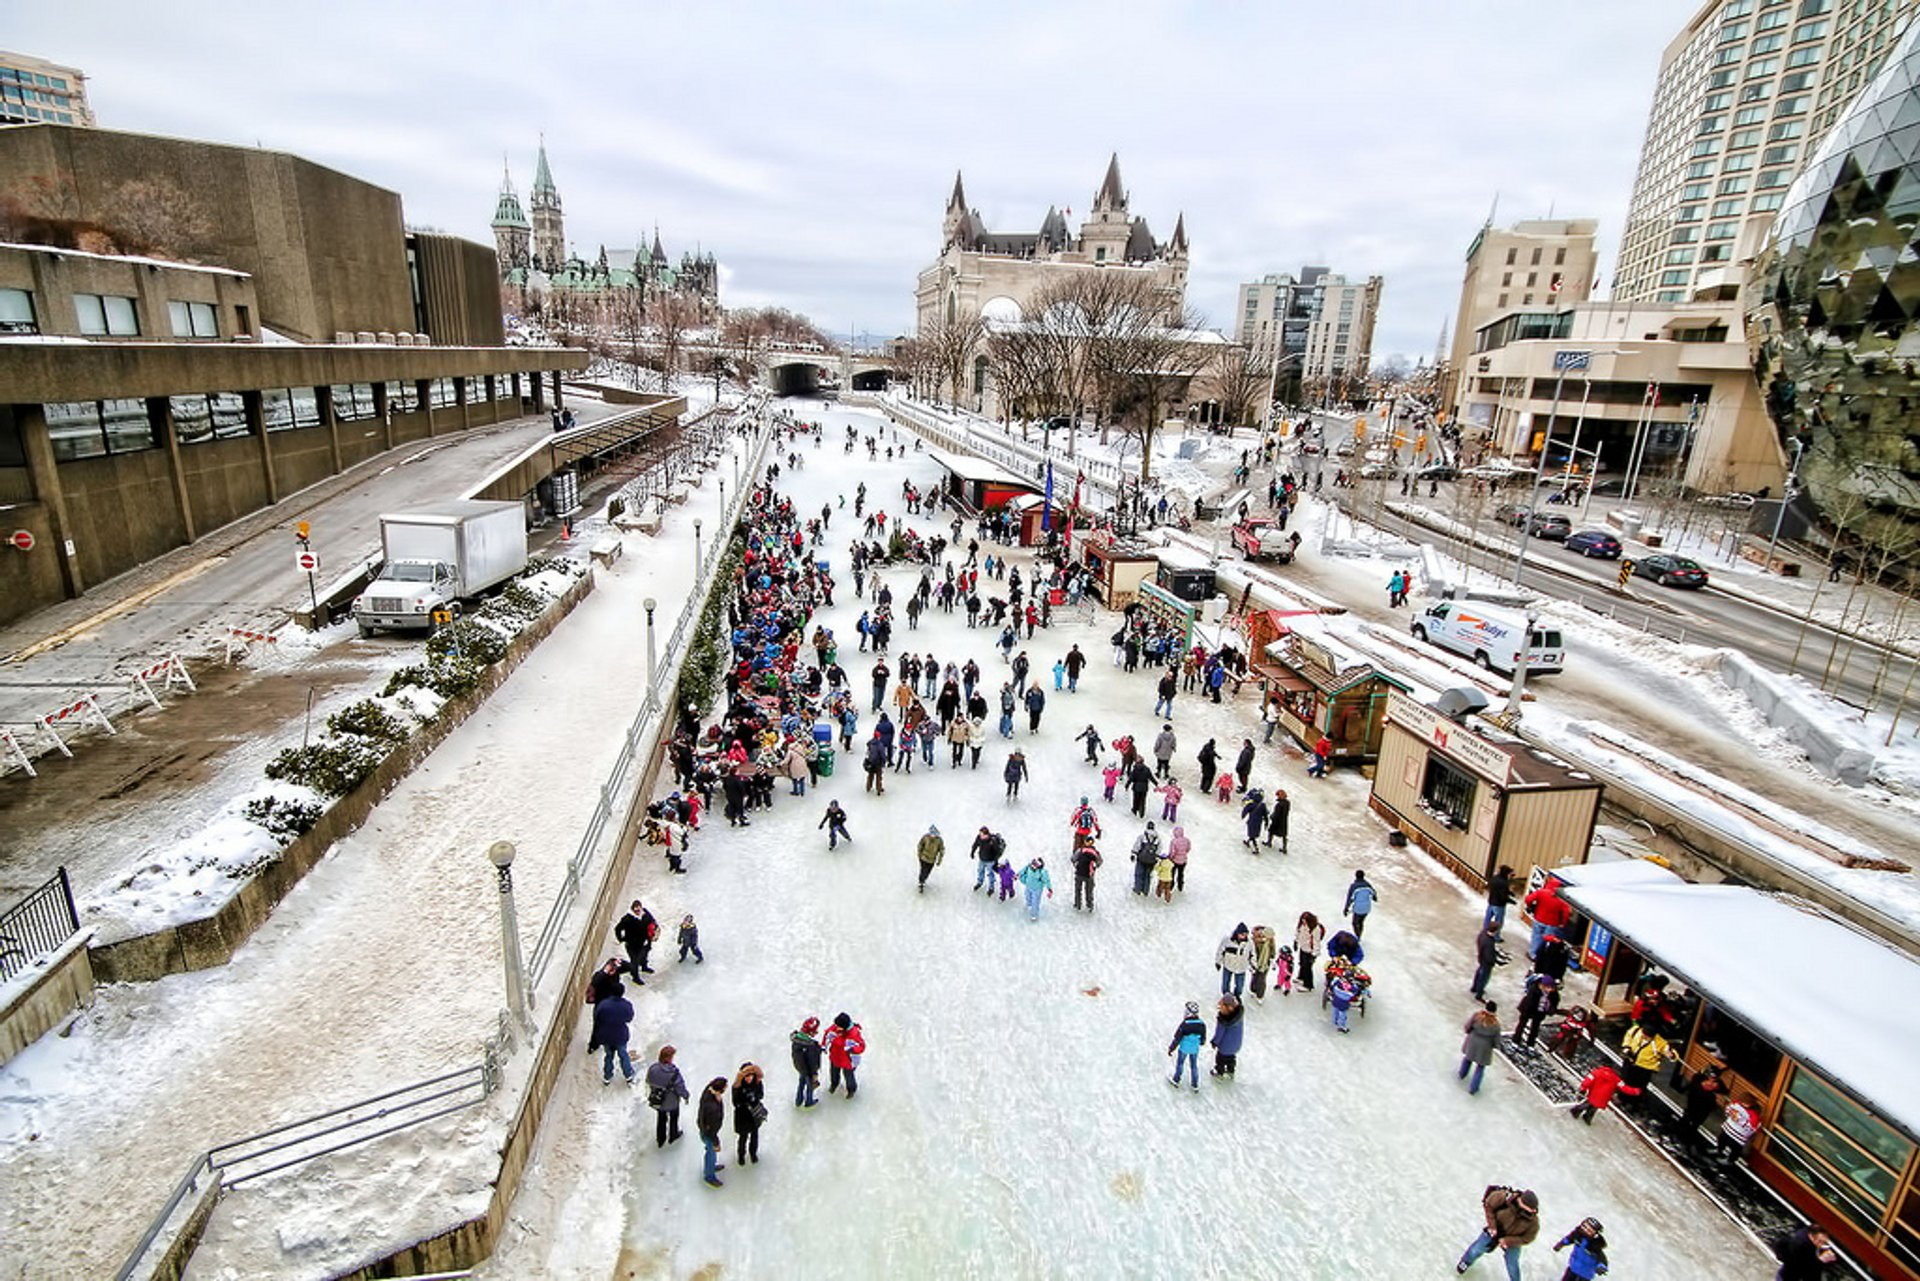 Rideau Canal Skating Season in Ontario 2020 - Best Time